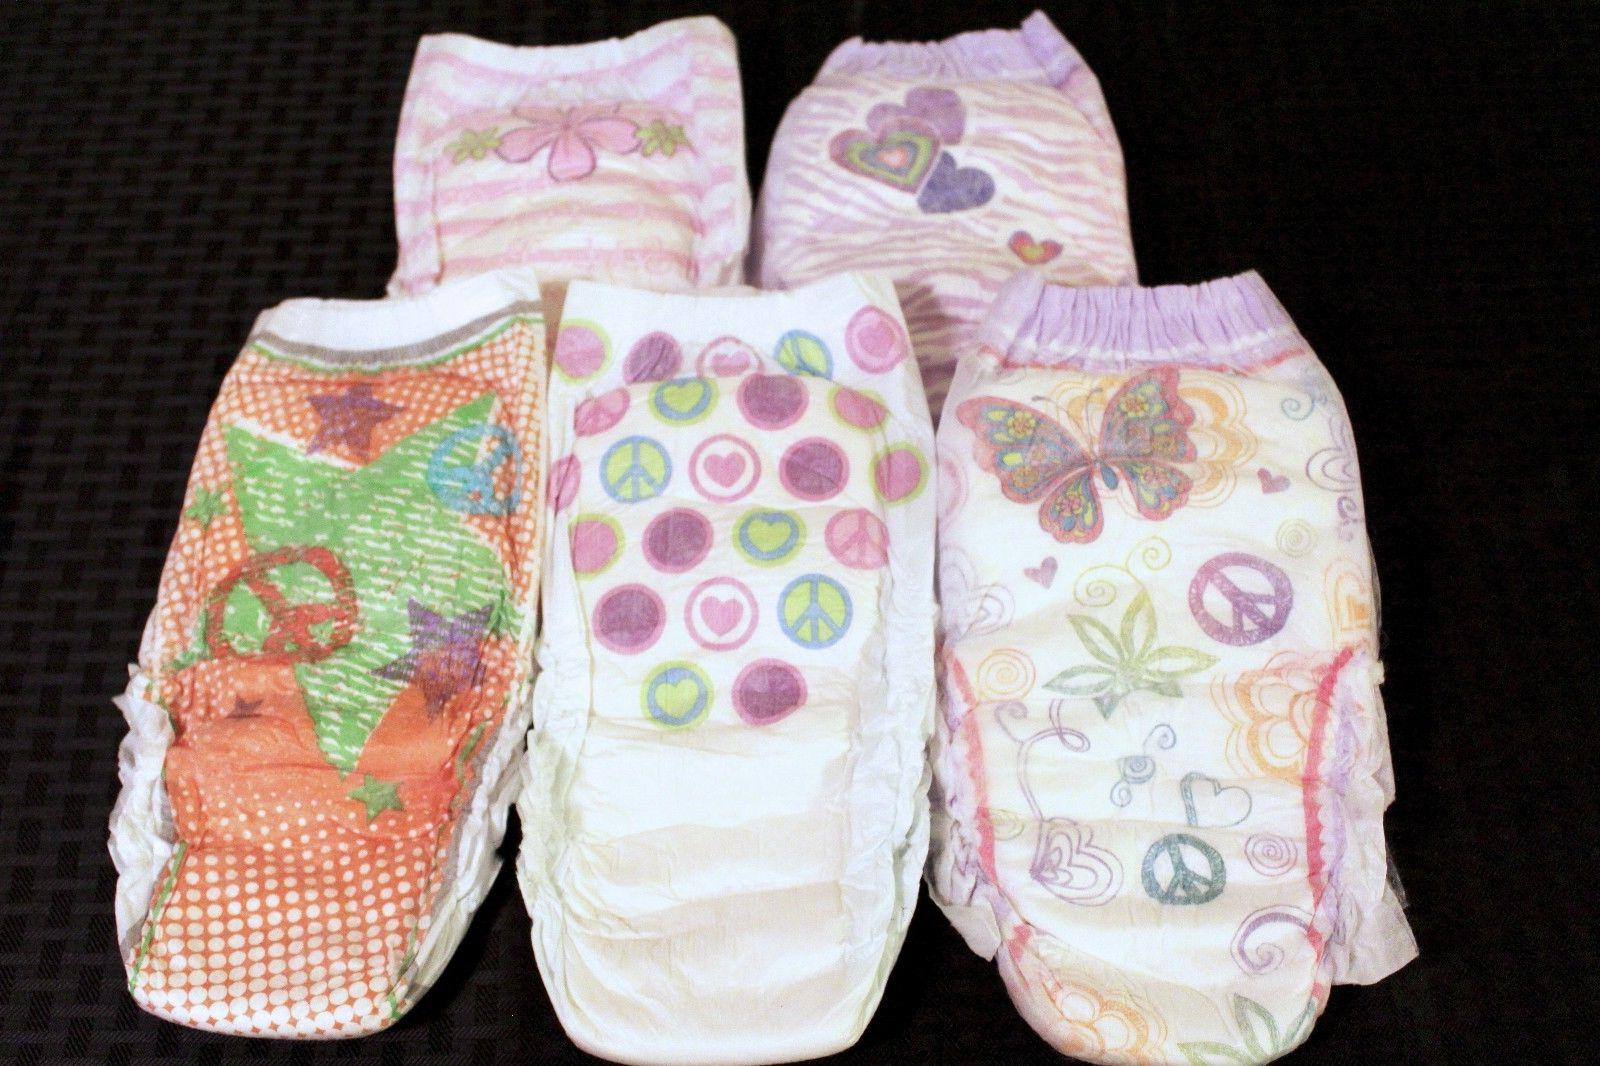 Goodnites Girls Bedtime Diapers size XL-XXL fits 120-250 lbs Fits plus size kids